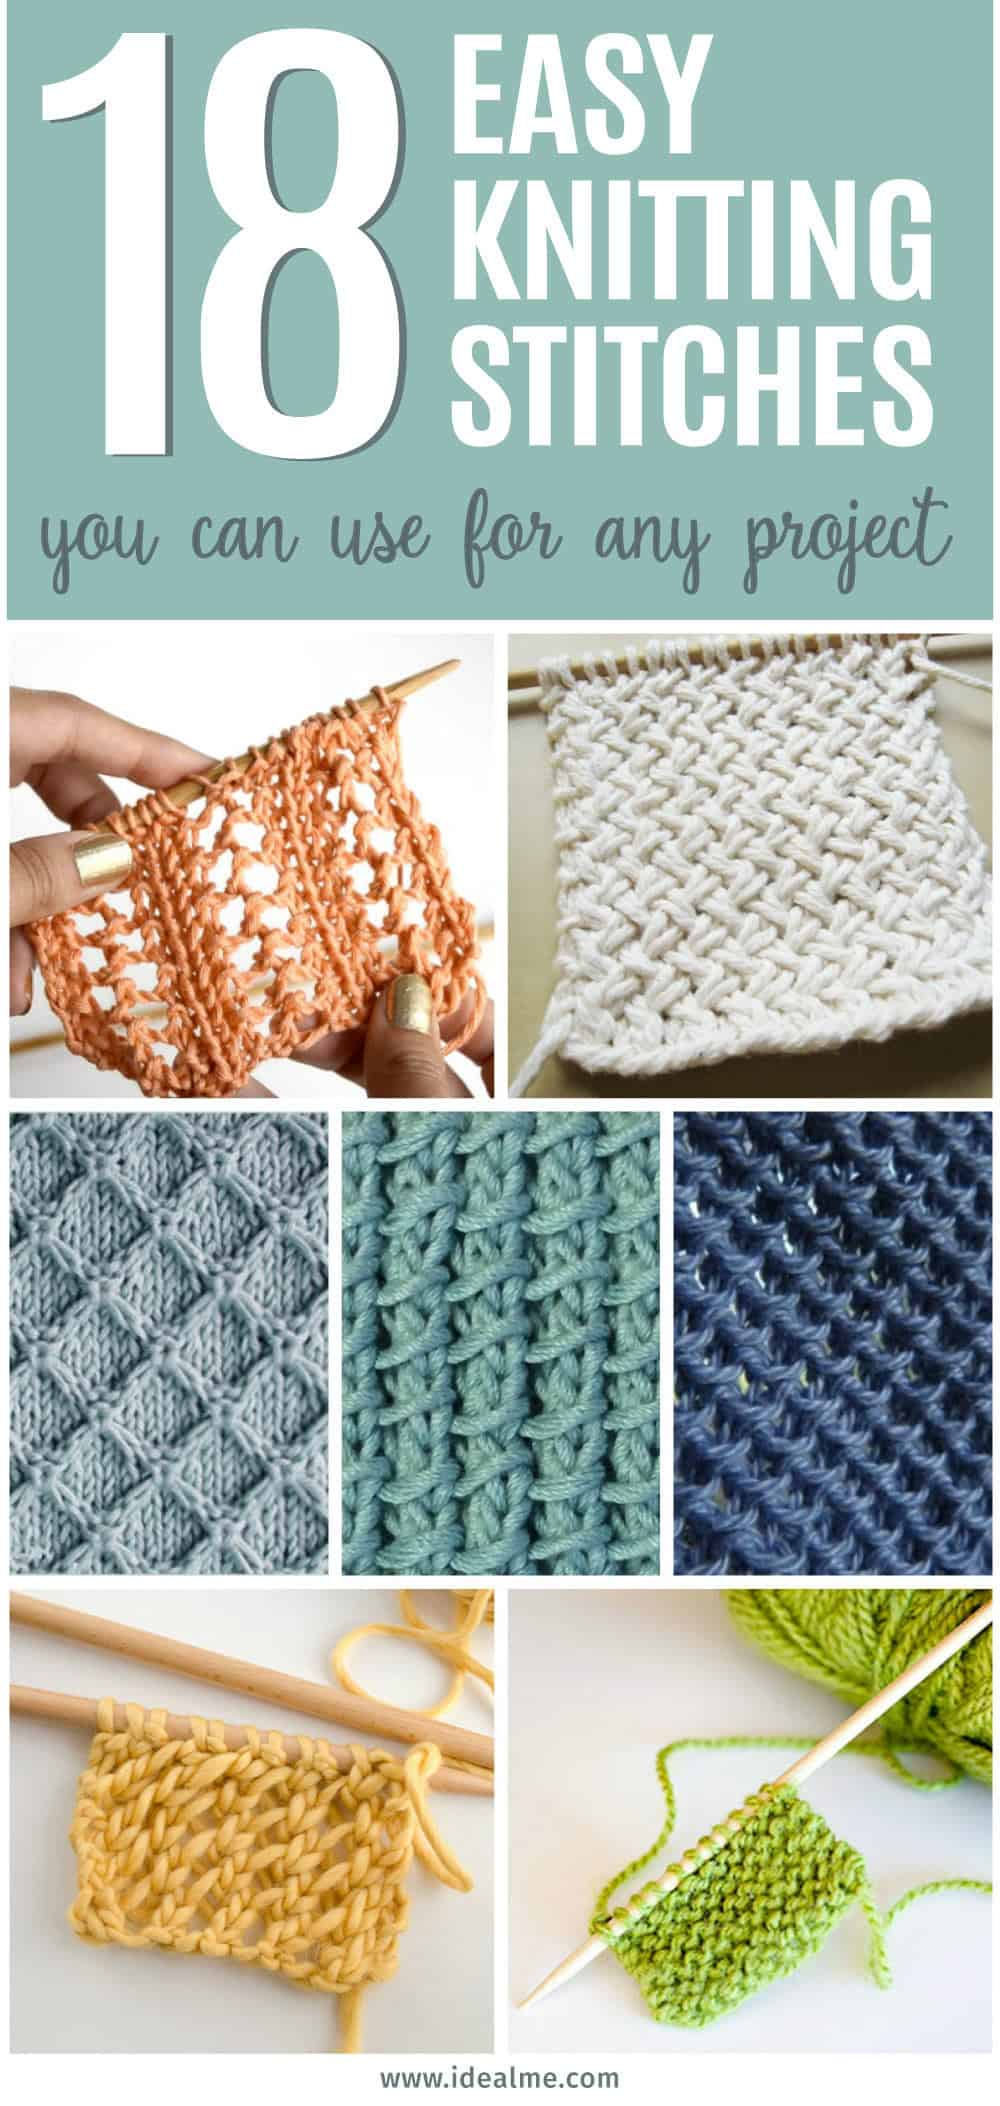 Quick Knitting Stitches : 18 Easy Knitting Stitches You Can Use for Any Project - Ideal Me